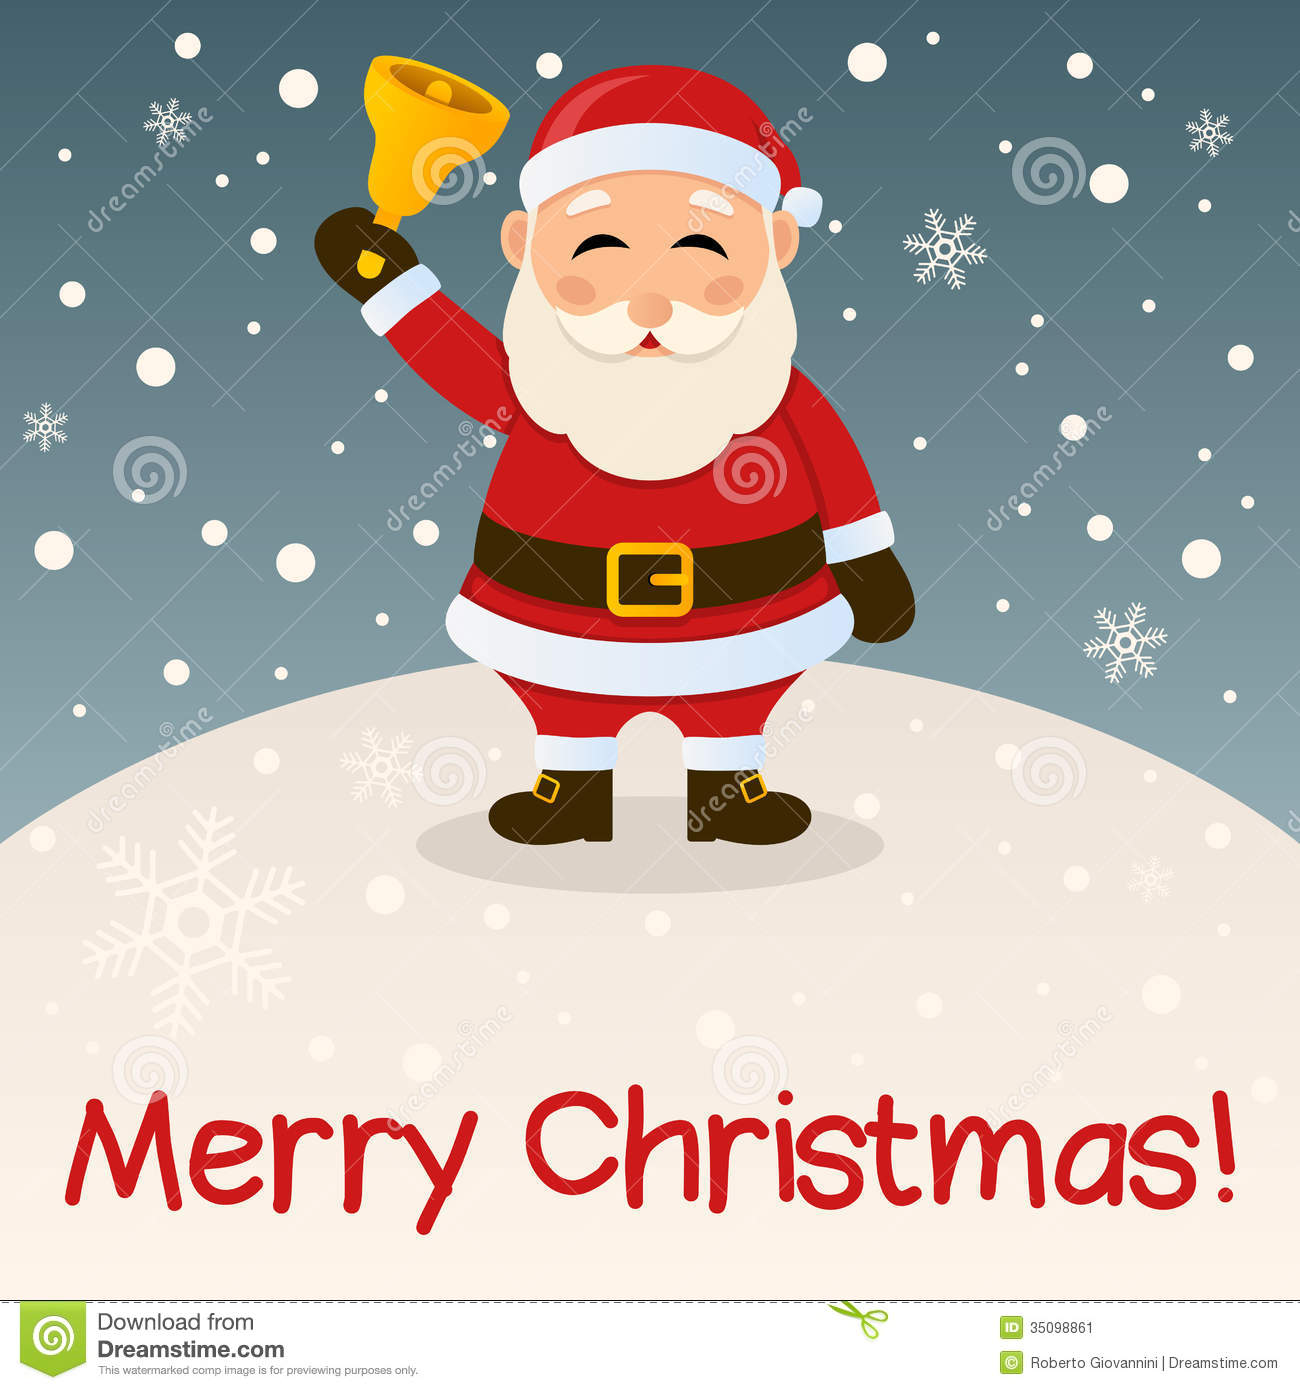 Merry Christmas Wishes Cards, Free Merry Christmas Wishes ...